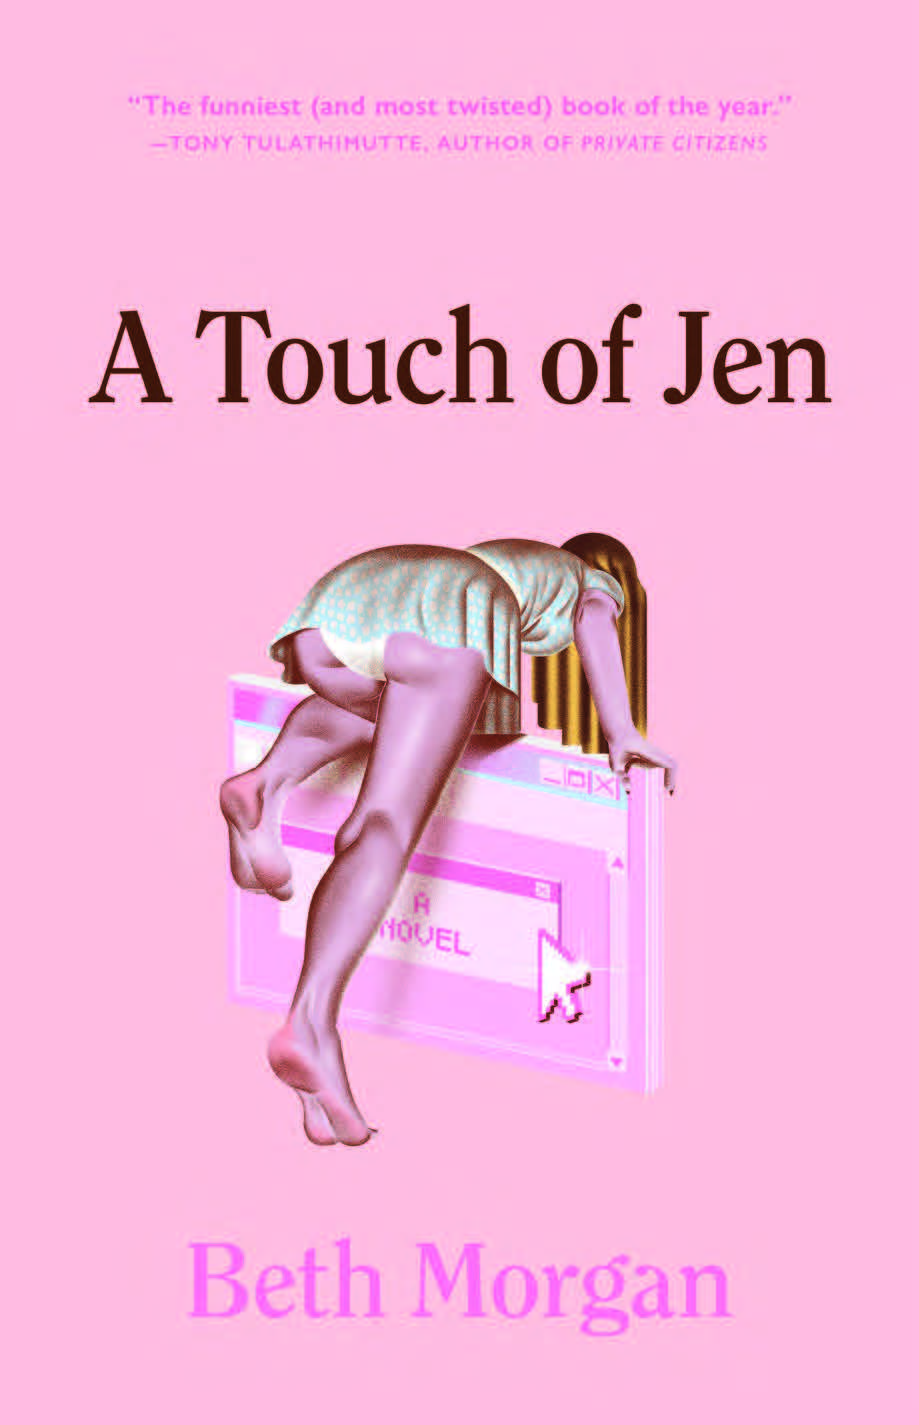 Virtual Book Launch: A Touch of Jen by Beth Morgan in conversation with Kristen Arnett